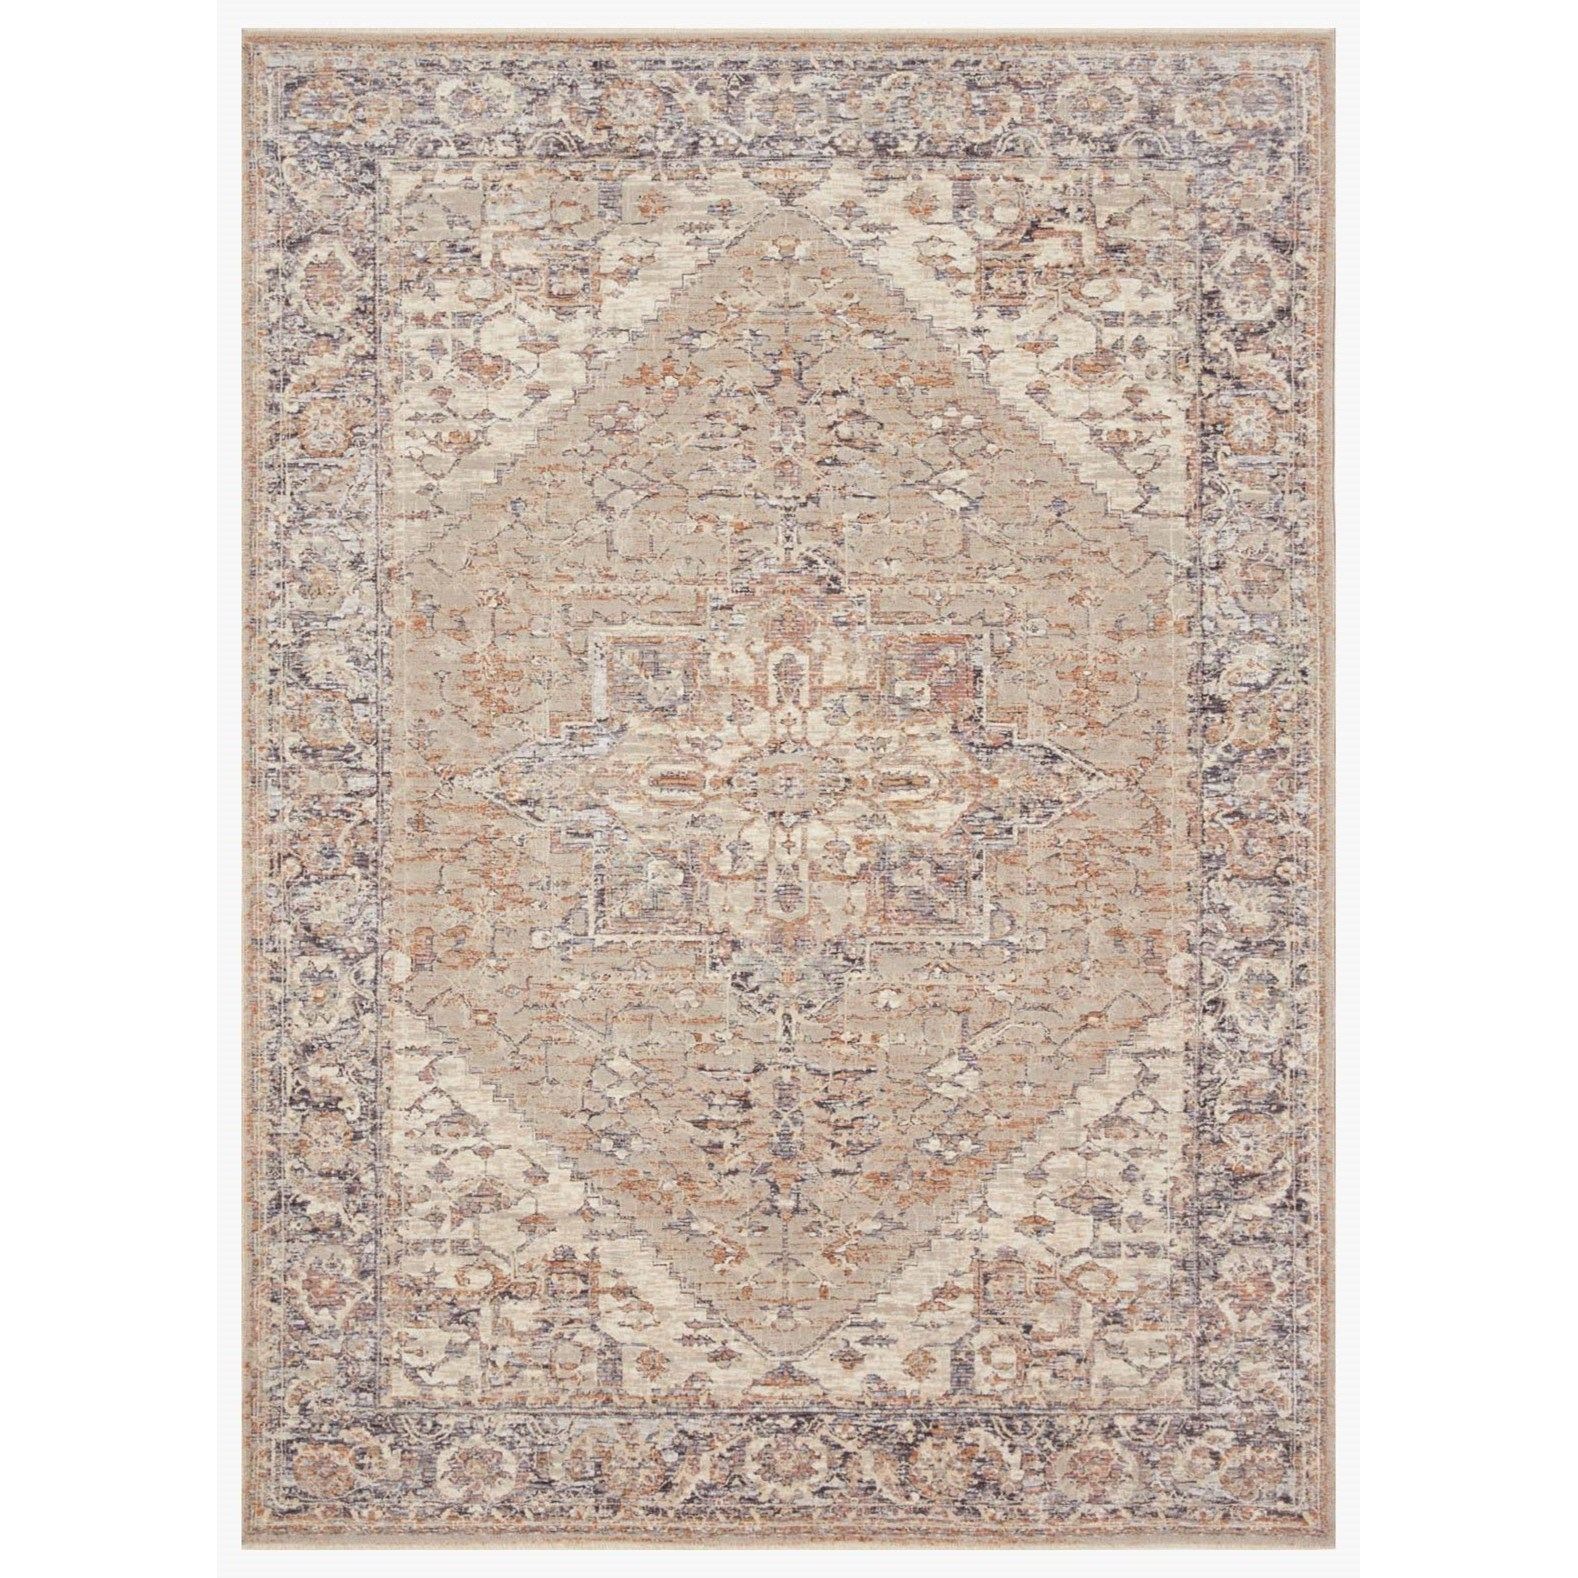 """Faye 11'6"""" x 15'7"""" Taupe / Denim Rug by Loloi Rugs at Virginia Furniture Market"""